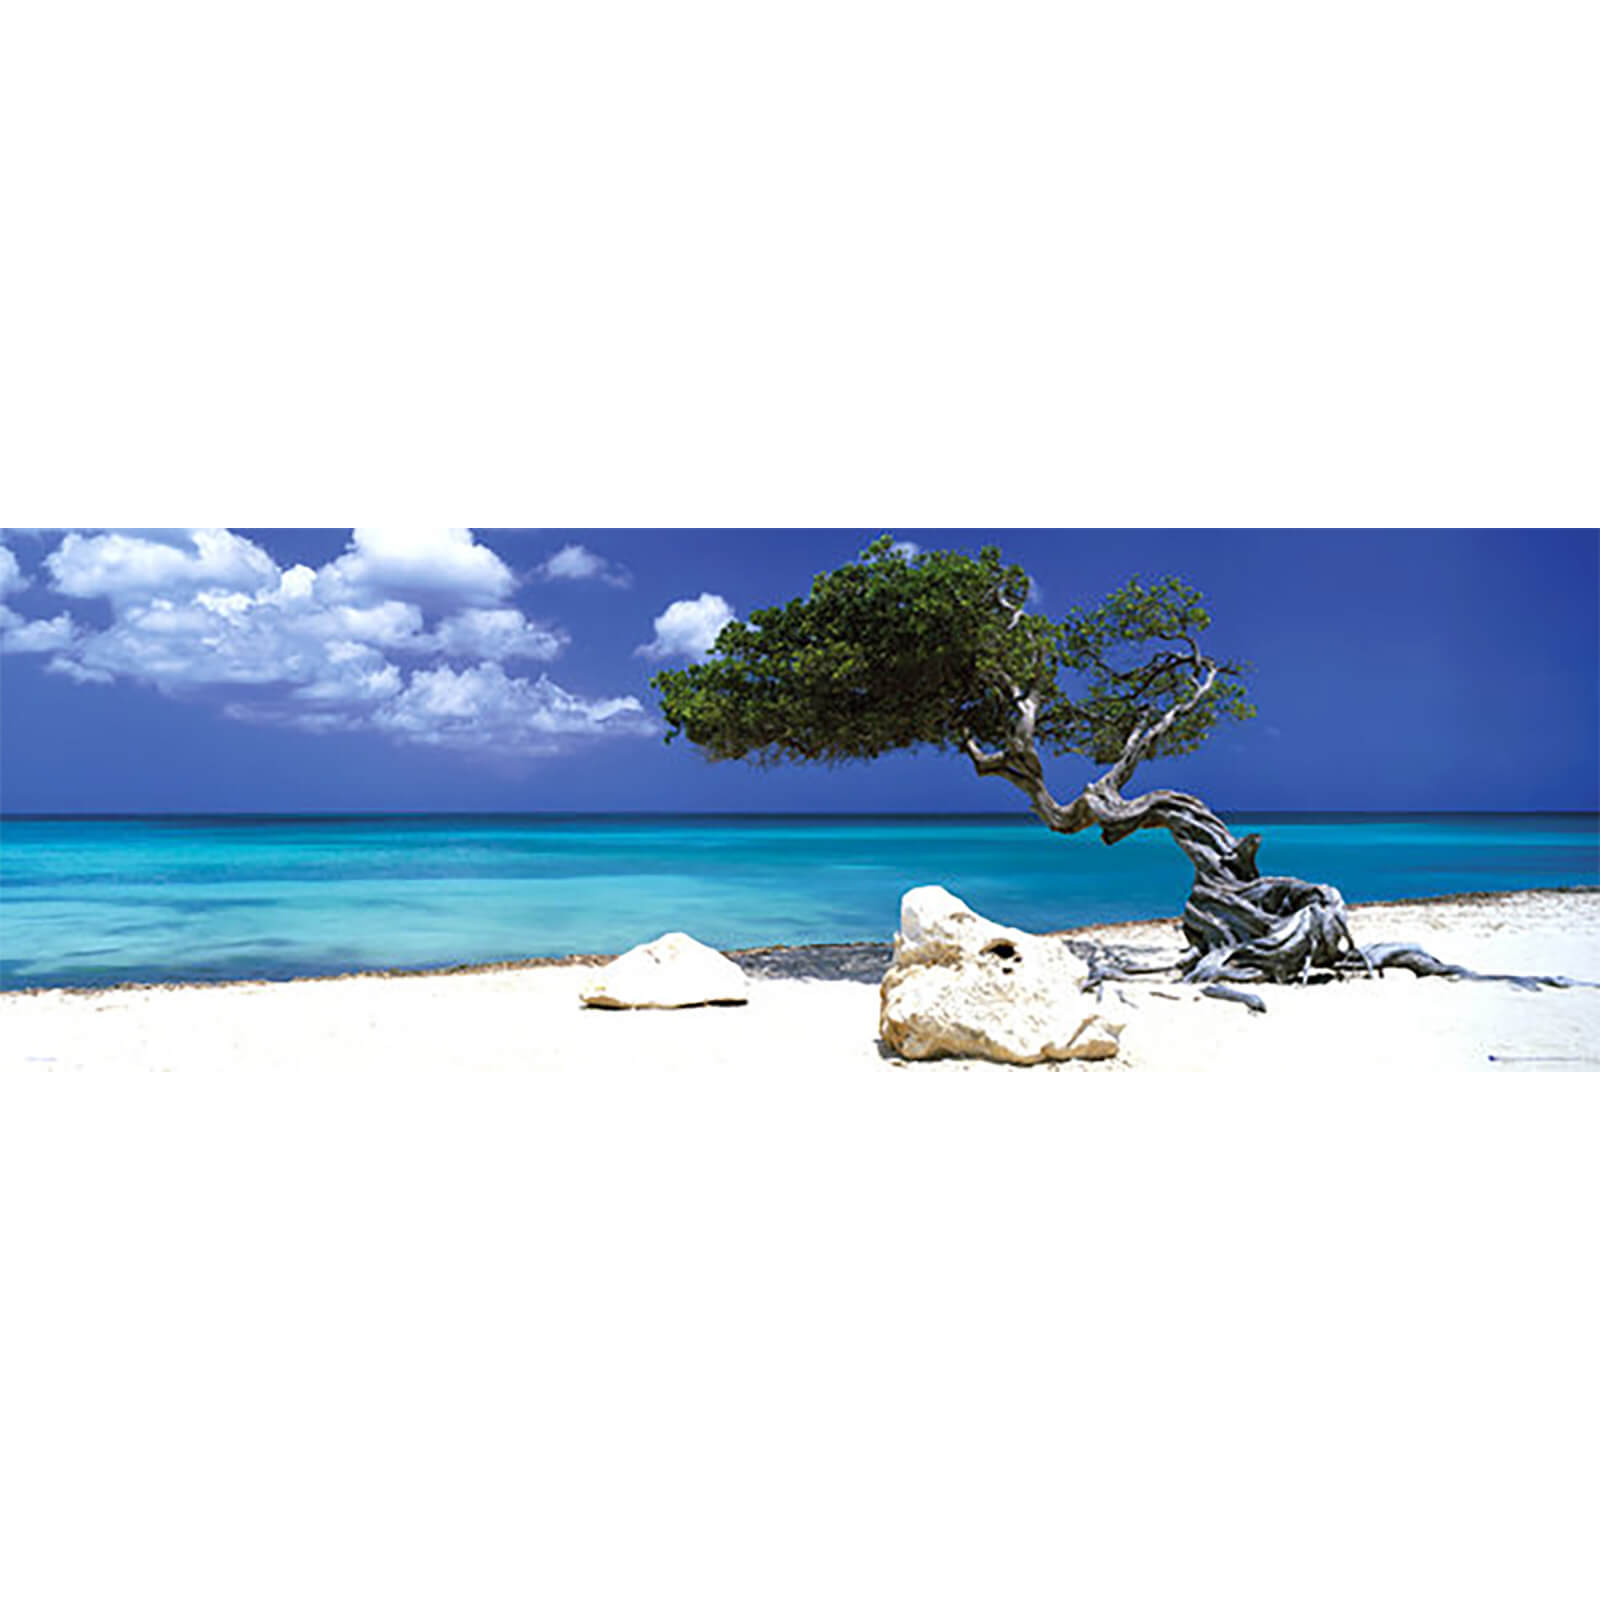 Tom Mackie Divi Divi Tree - Door Poster - 53 x 158cm